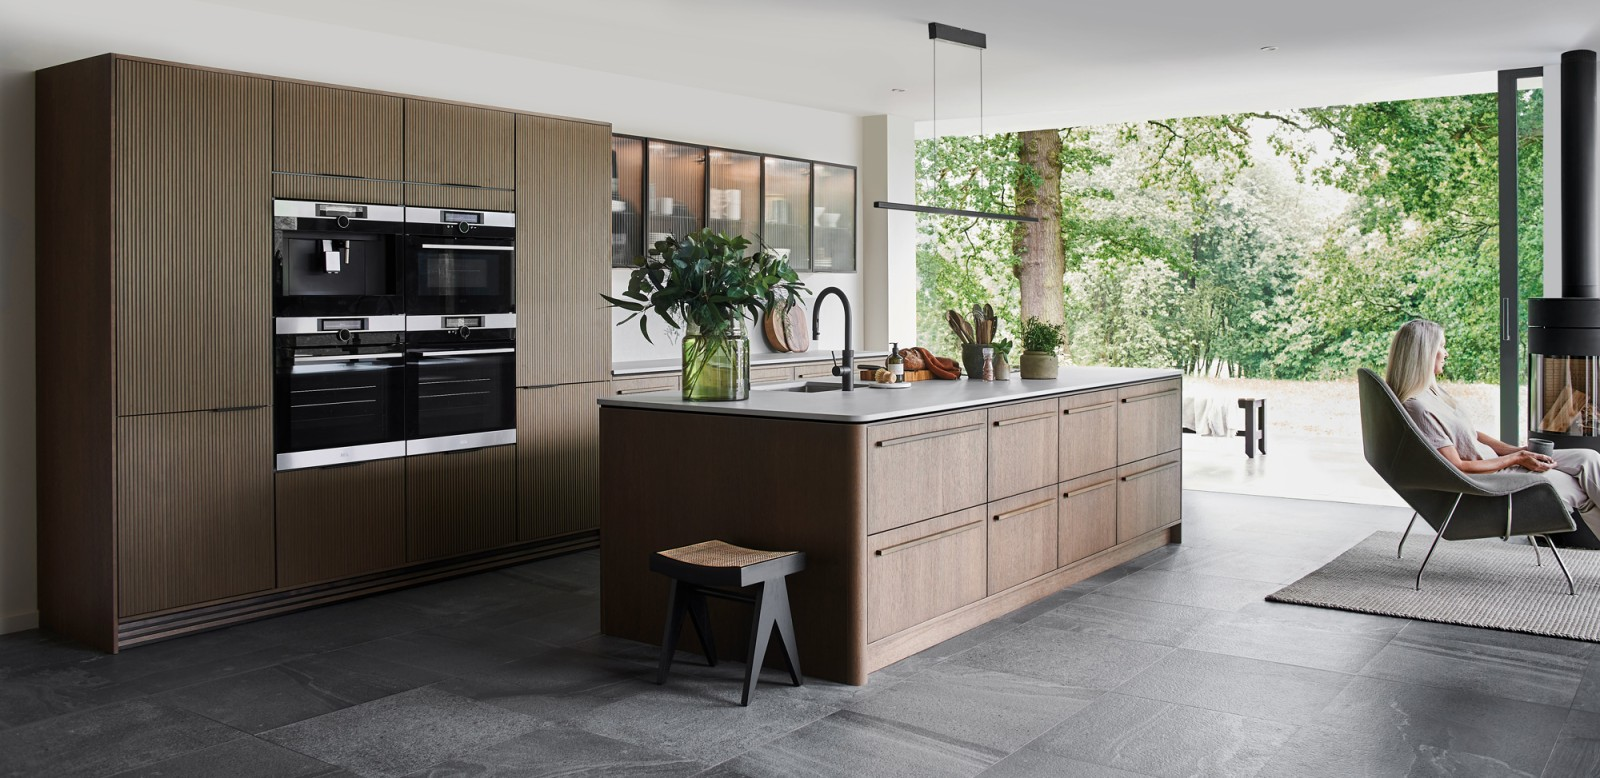 Nordic Nature. Modern wooden kitchen design with a Nordic influence. Featured floating worktops, a ribbed plinth and rounded end panels